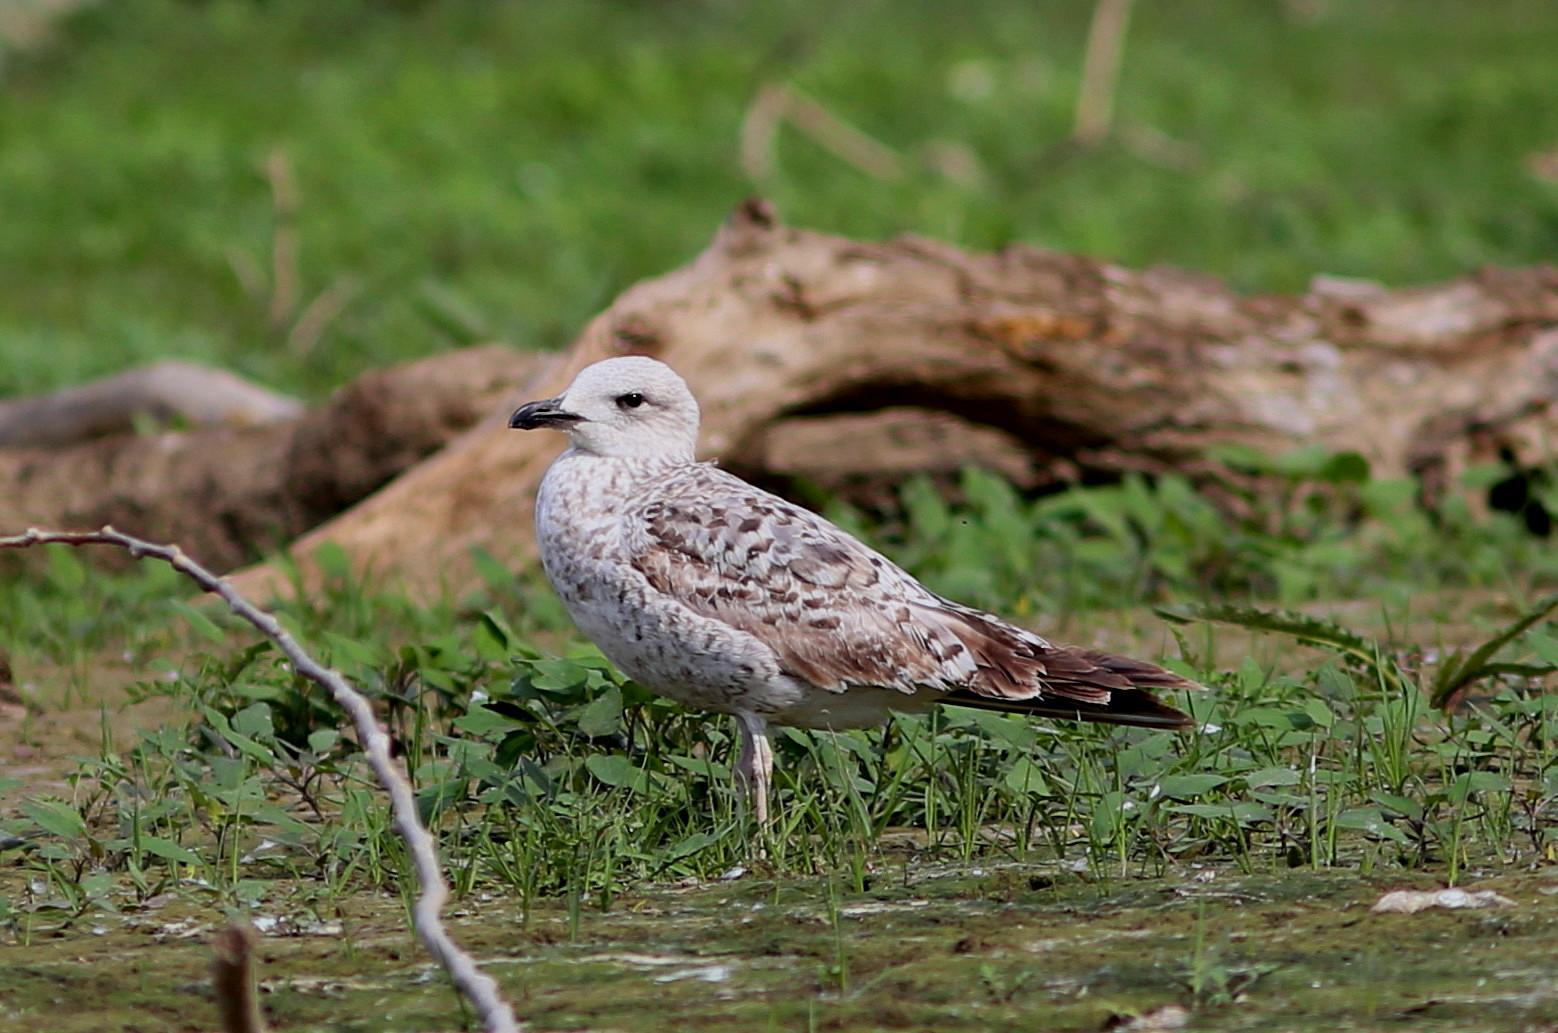 Yellow-legged Gull Photo by Rohan van Twest